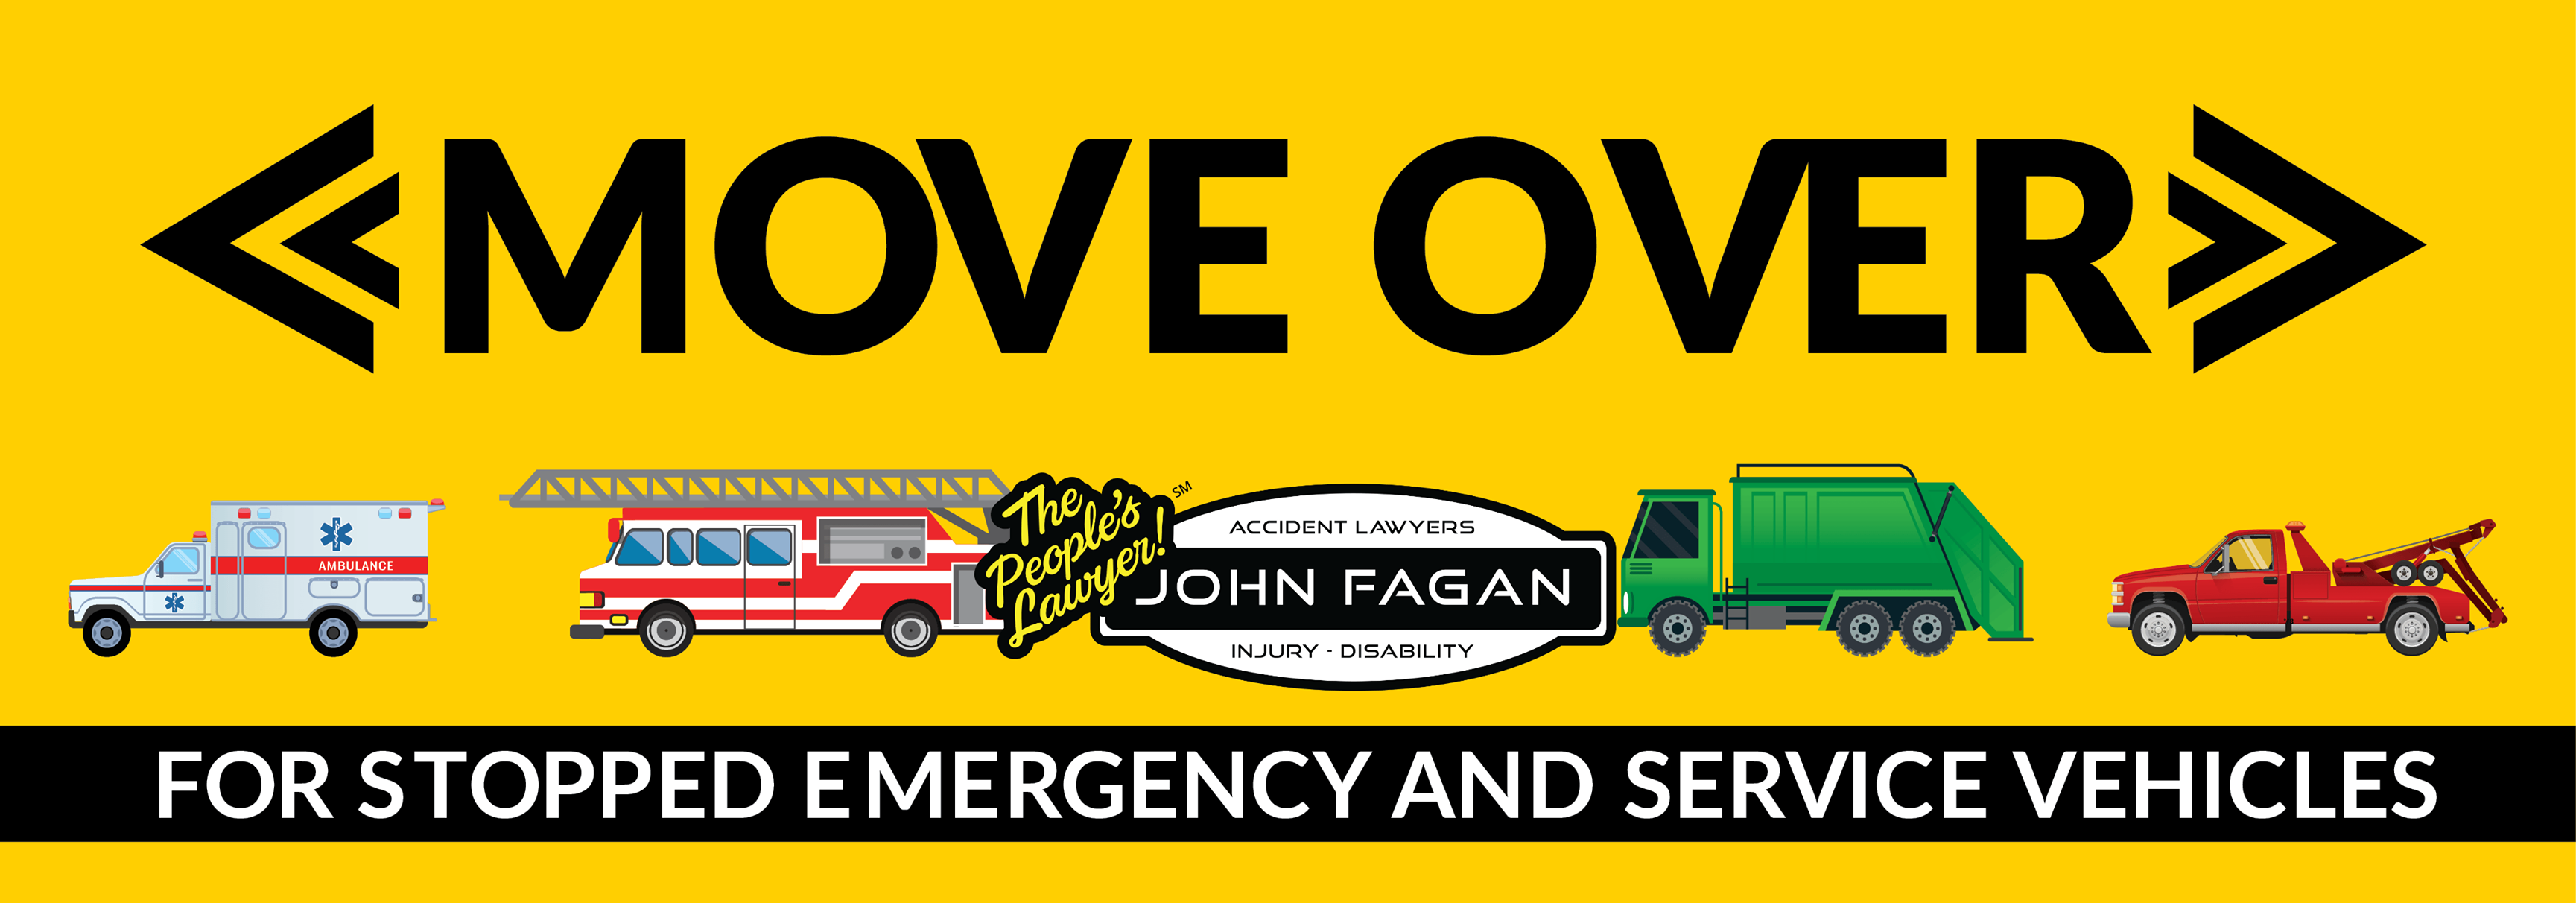 Move Over, Florida! – Florida Highway Safety and Motor Vehicles